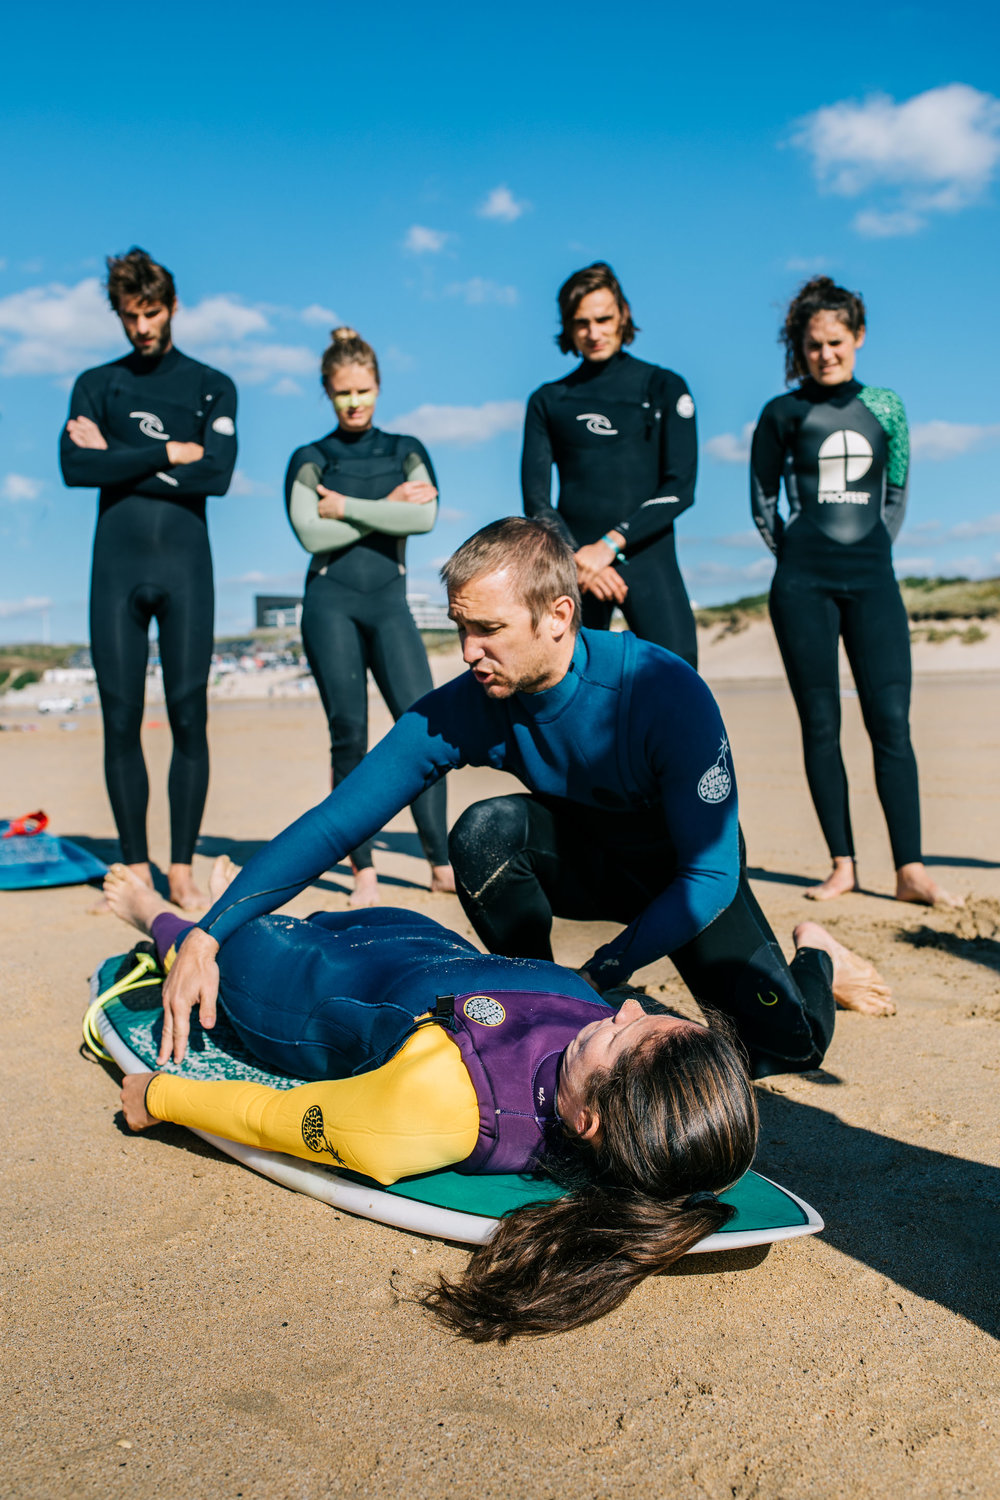 A surf lifesaving course takes place on Fistral beach as part of the Surf Medicine International conference. Newquay, Cornwall, UK. 26th Sept 2018.